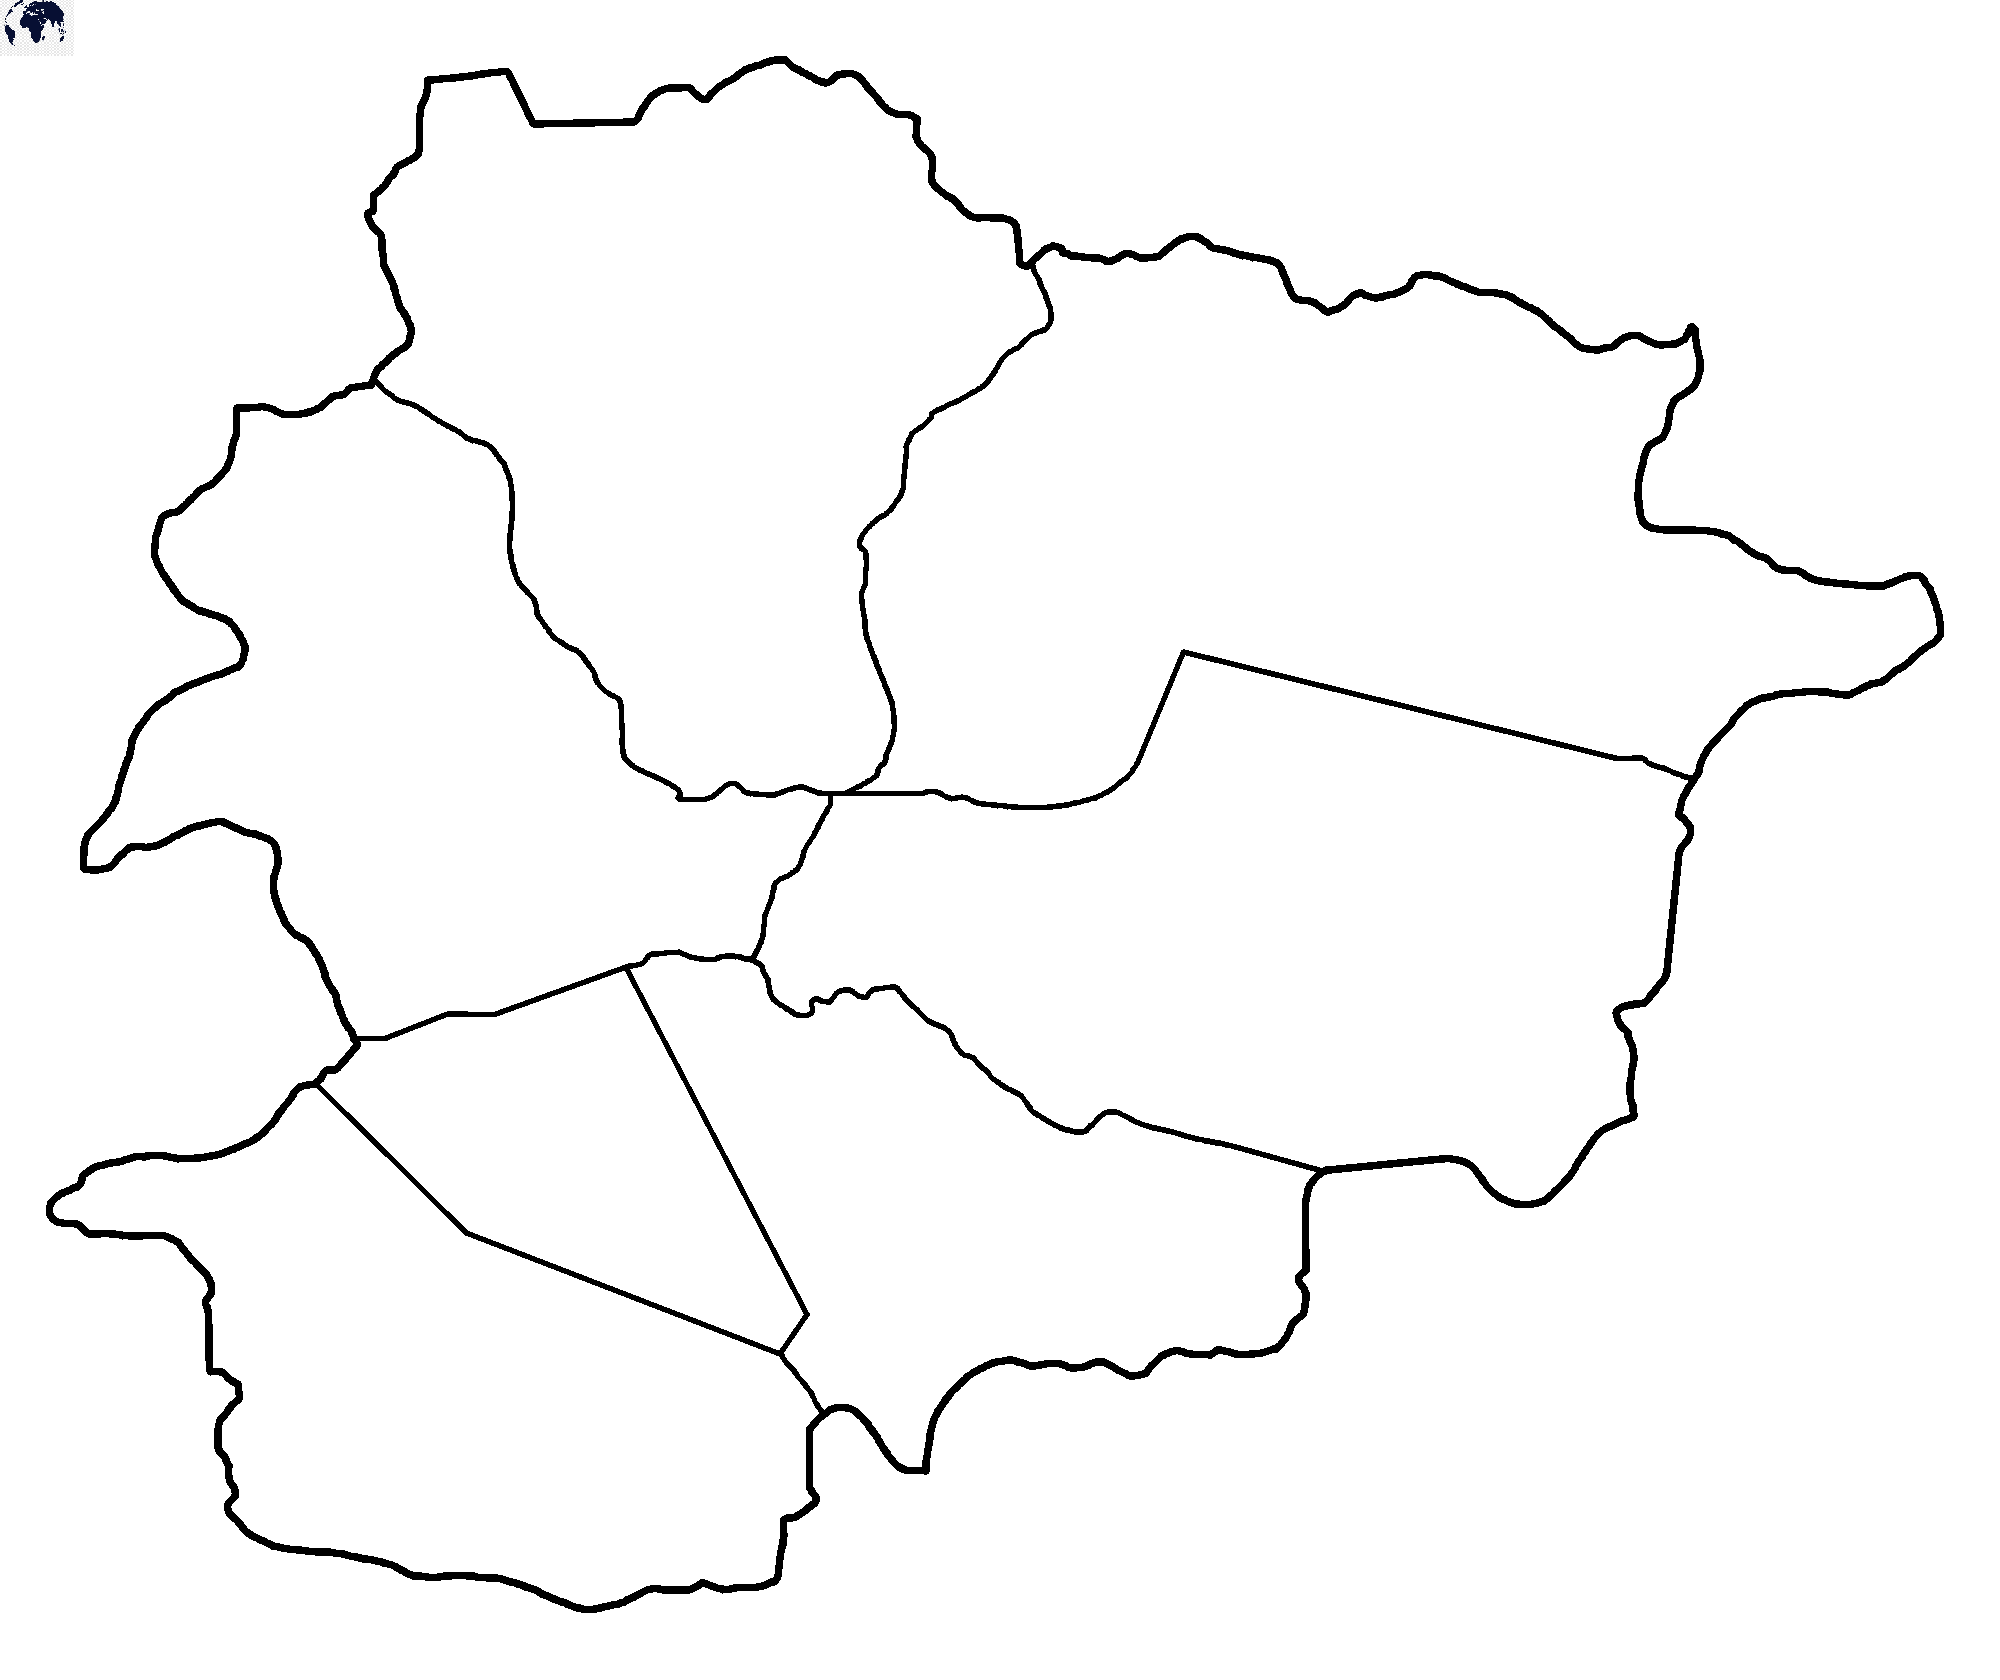 Map of Andorra for Practice Worksheet